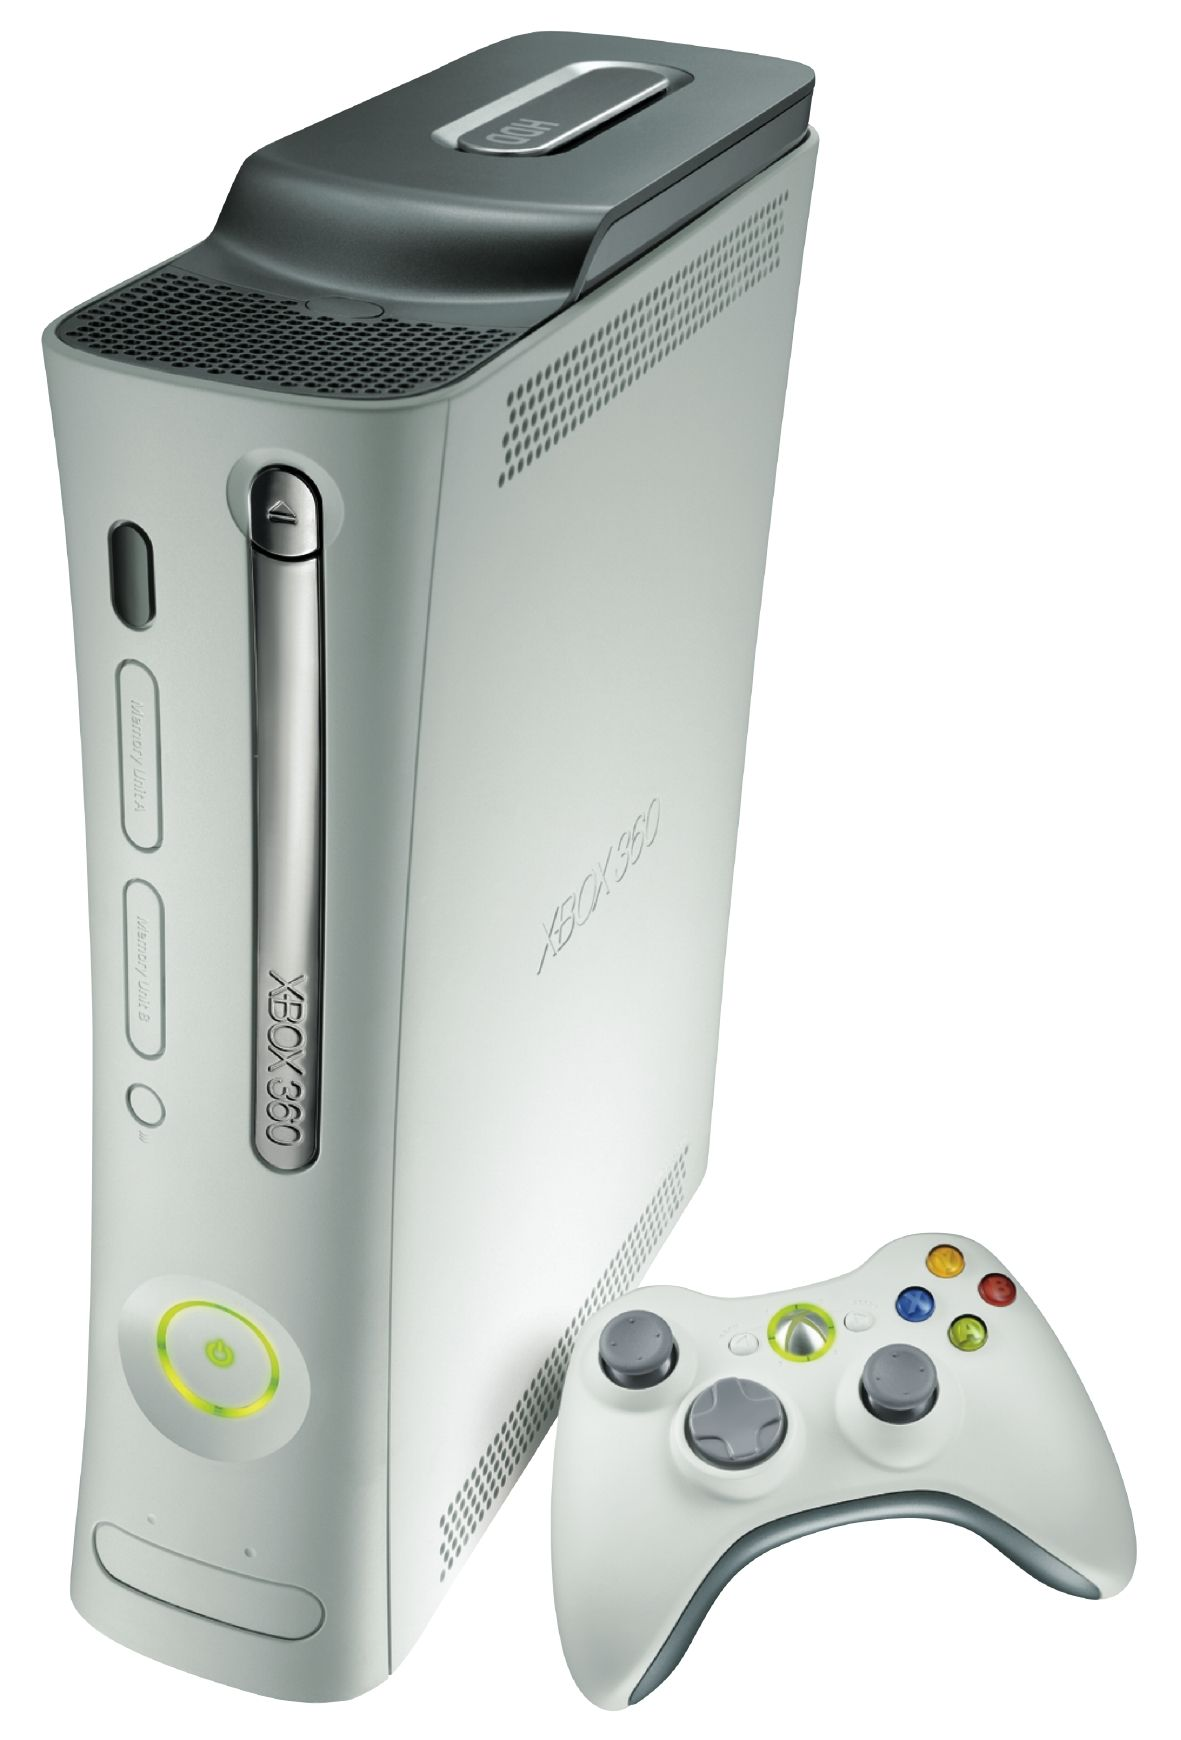 I preordered my Core bundle Xbox 360 at the Gamestop in